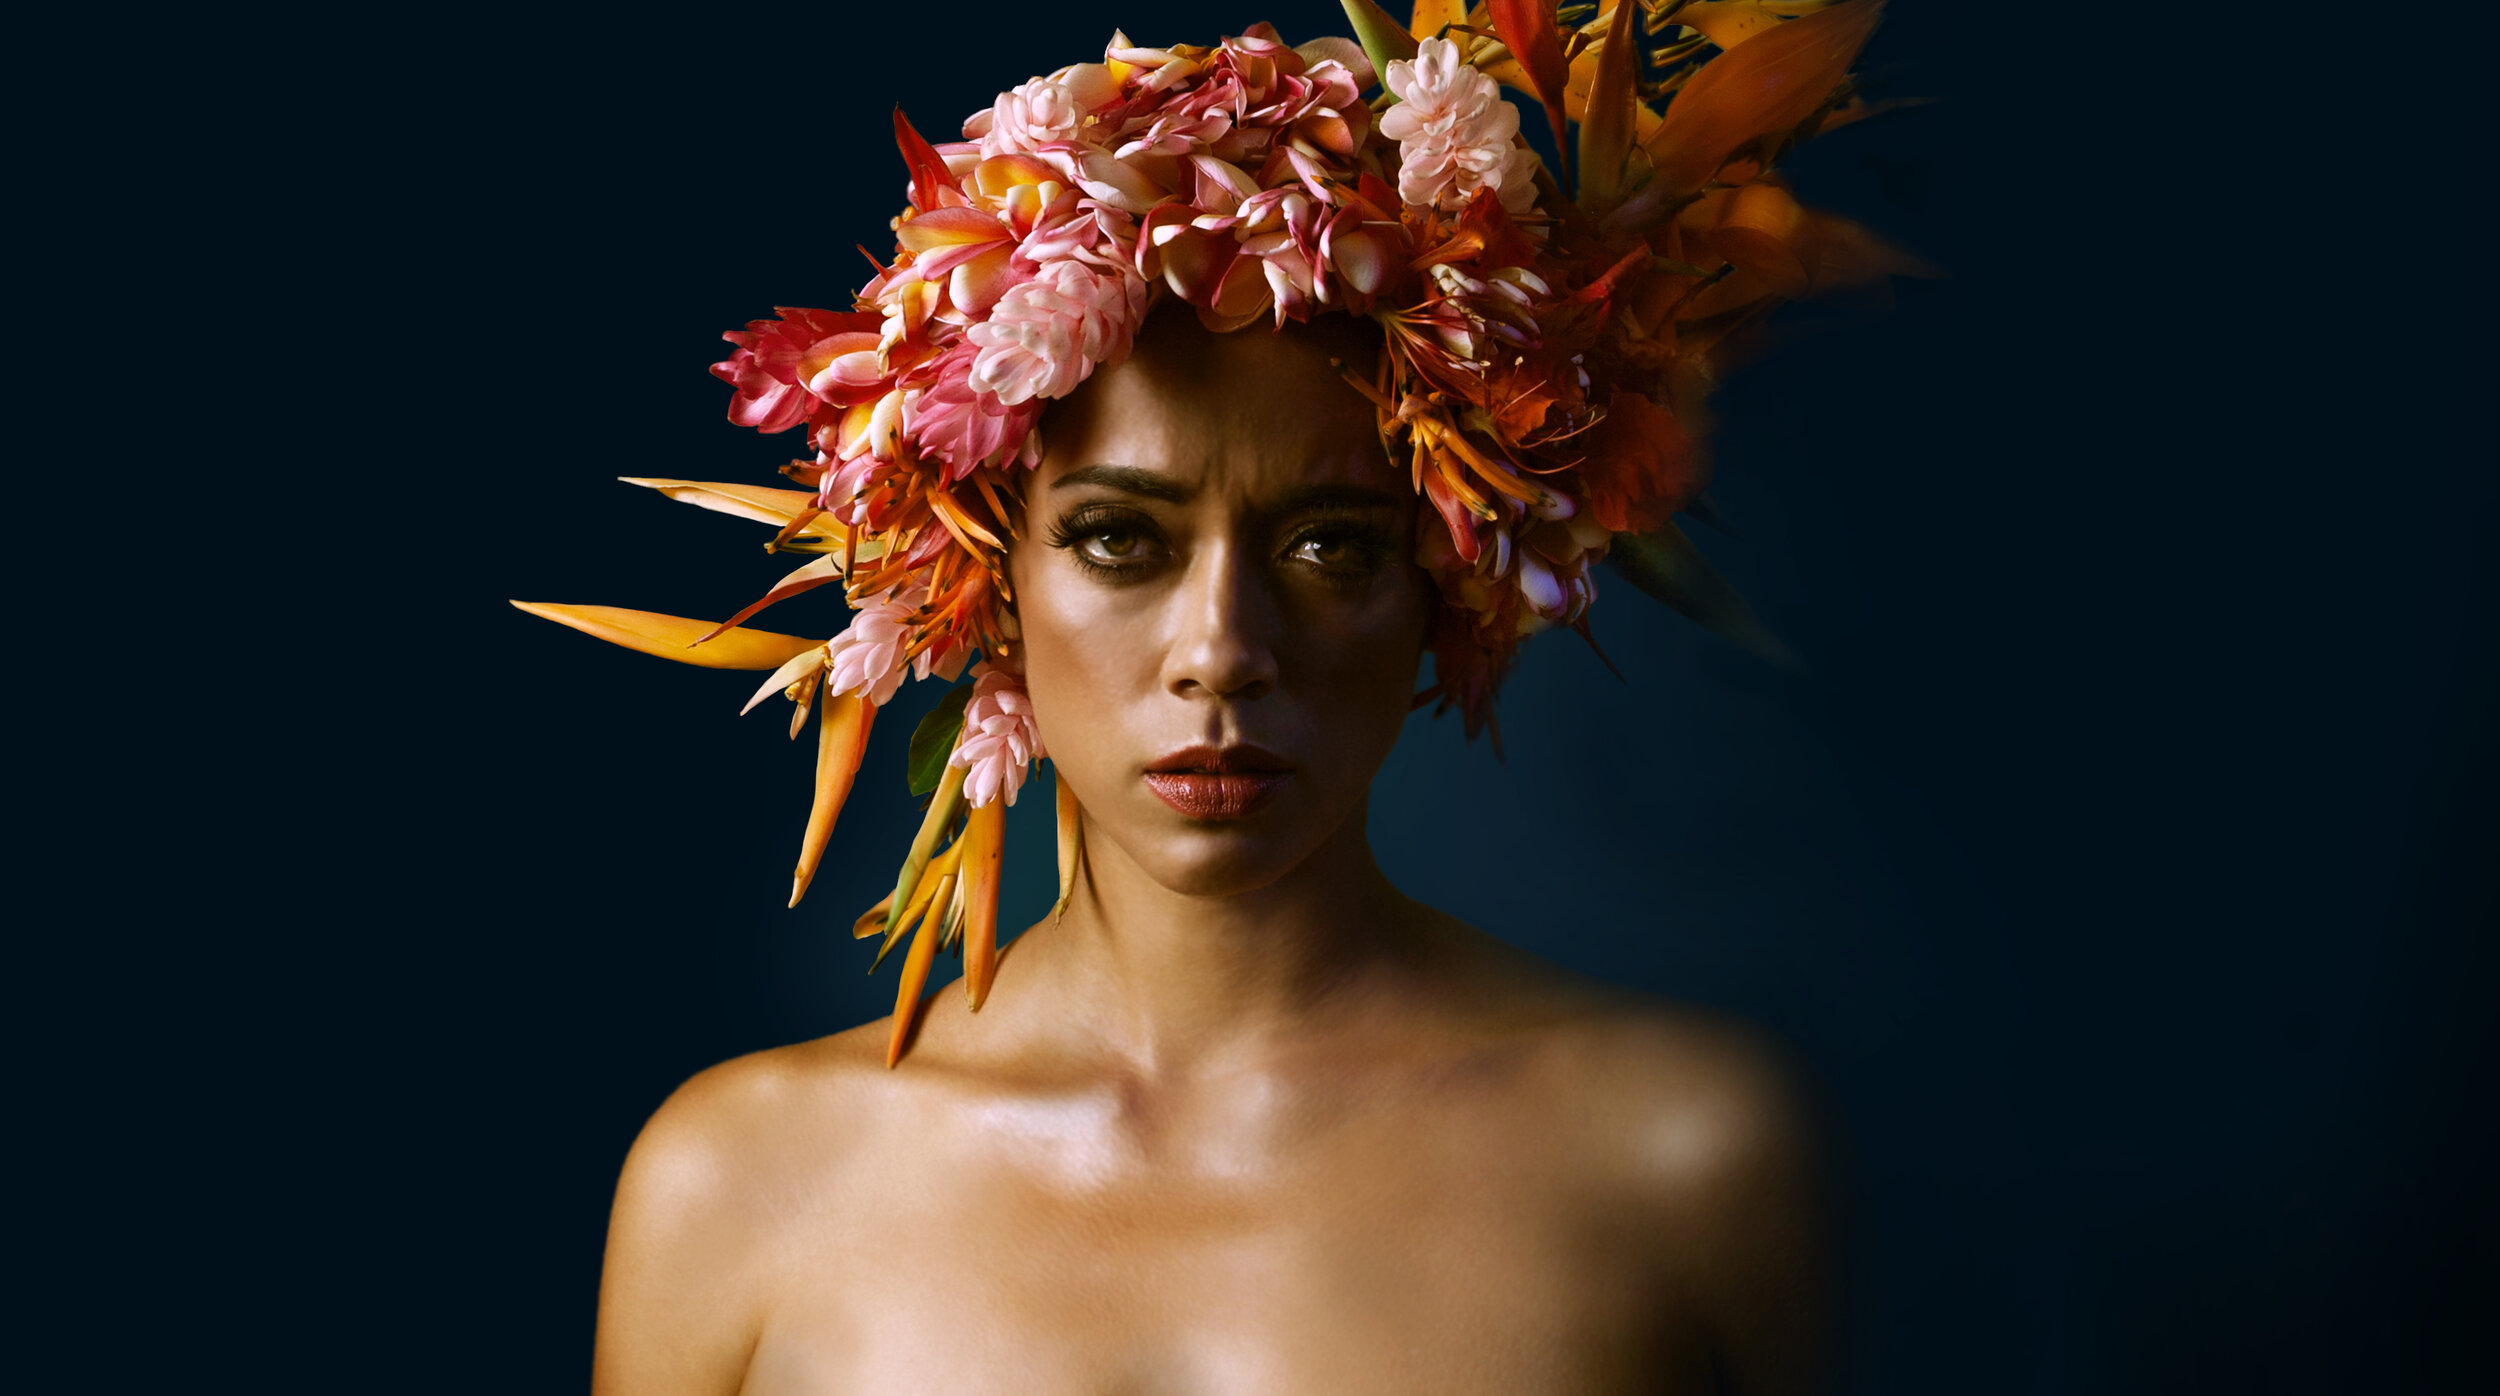 Woman with bare shoulders and floral headgear stares straight ahead